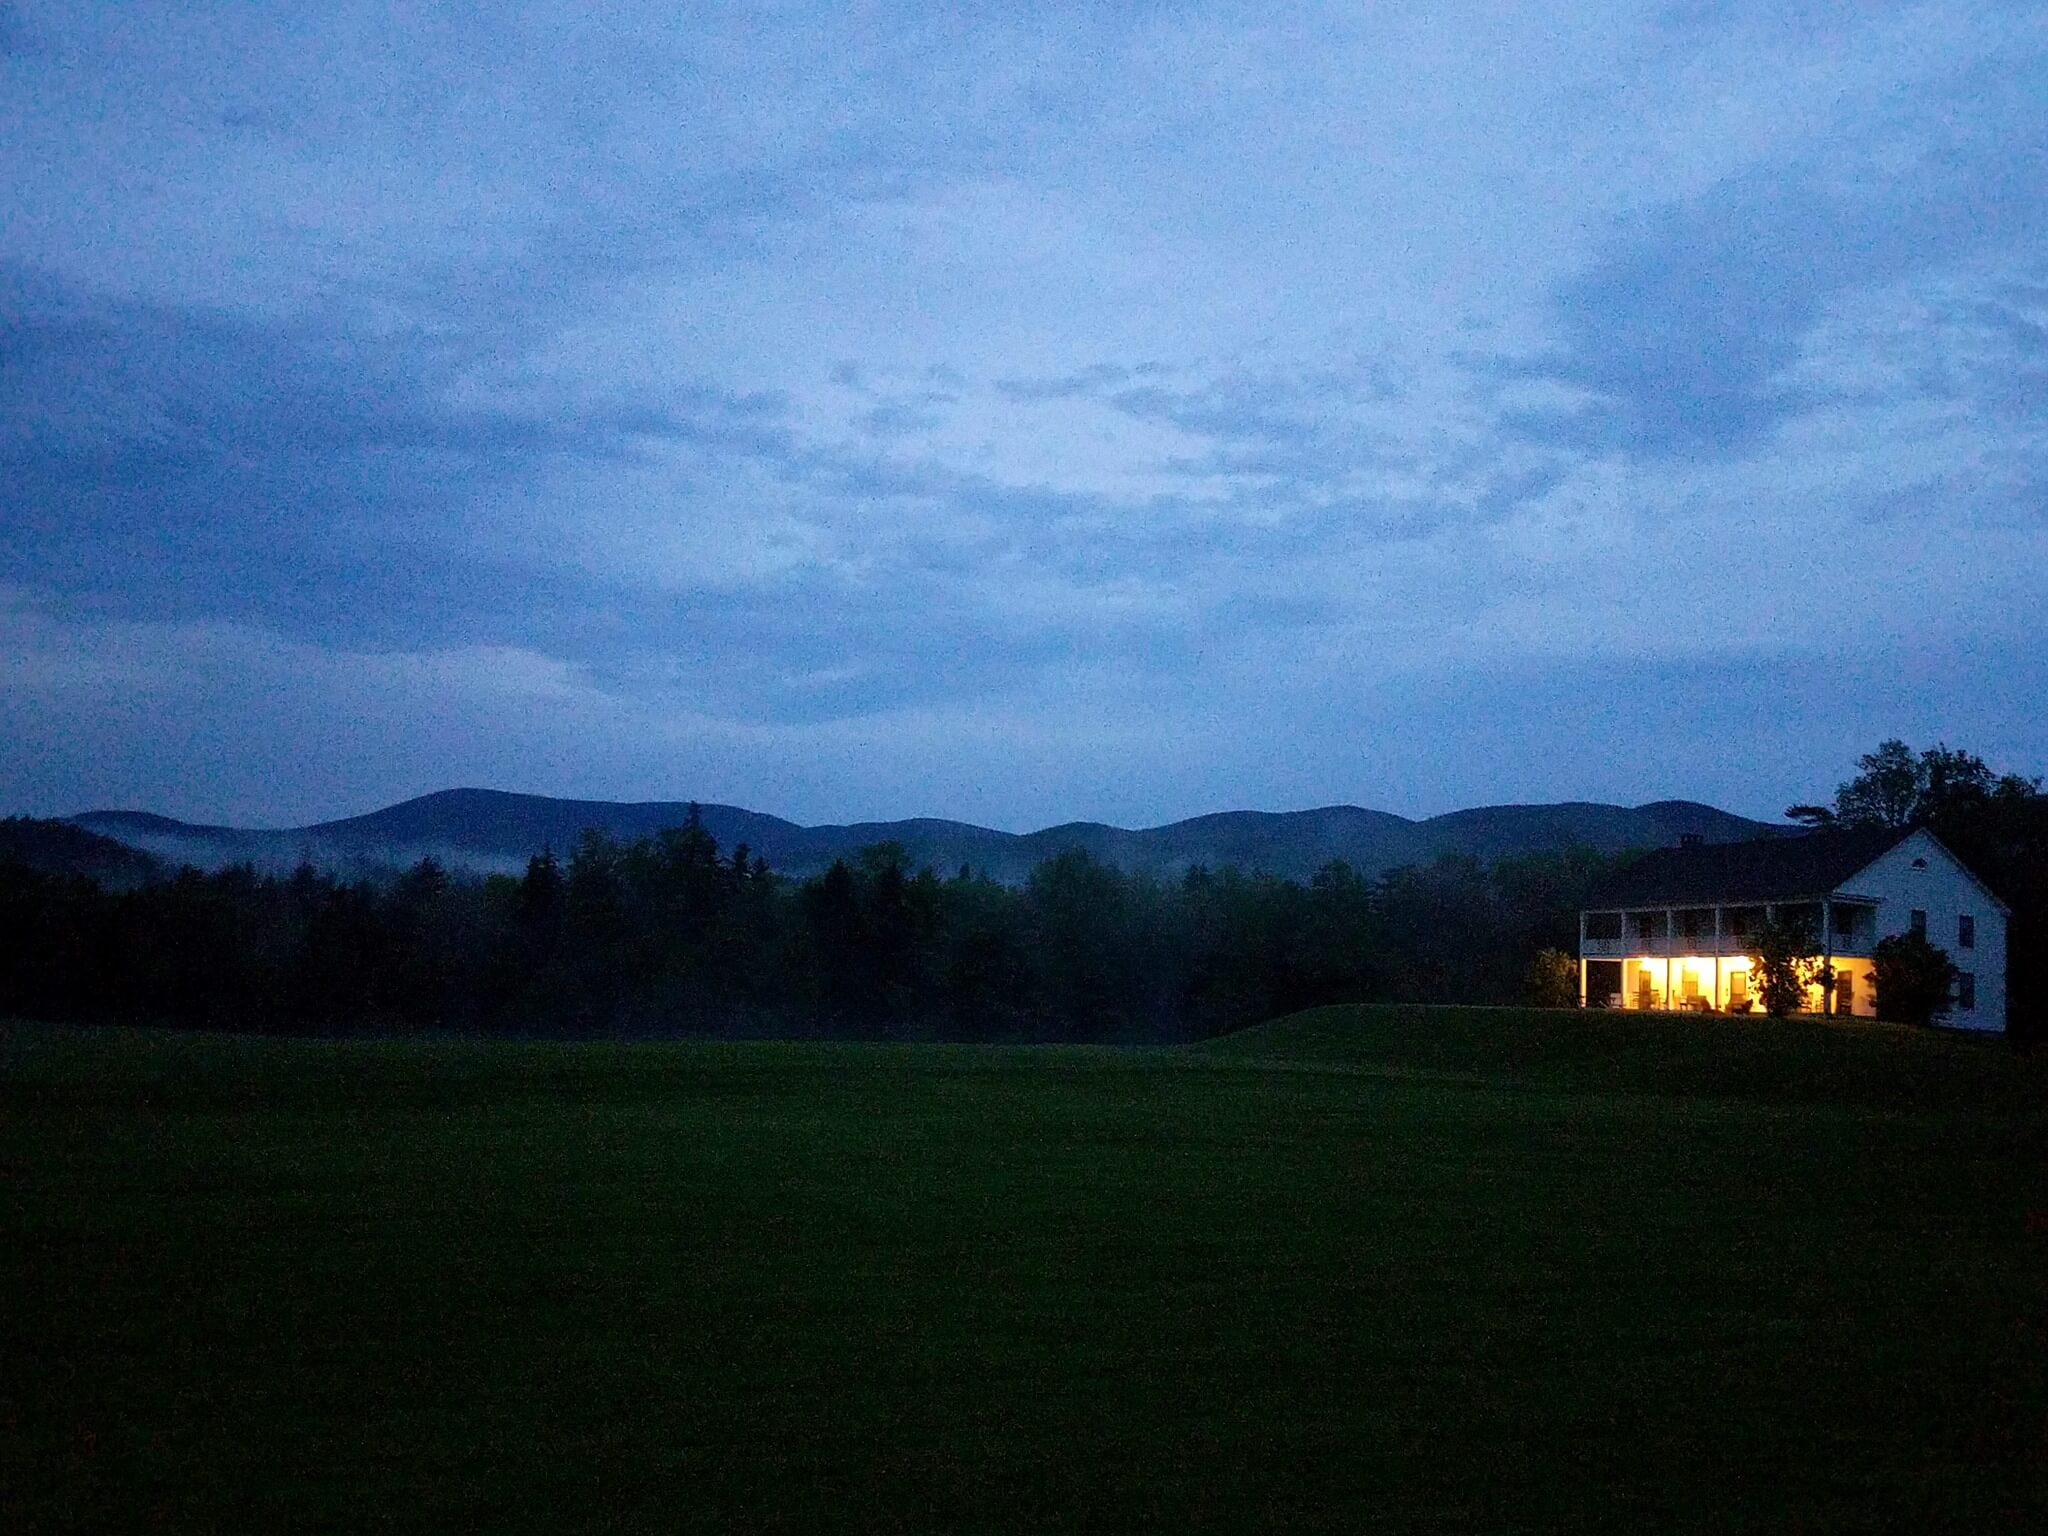 Dusk shot of a 2-story house/hotel thing situated on well-manicured greens; in the background are a line of trees and rolling mountains